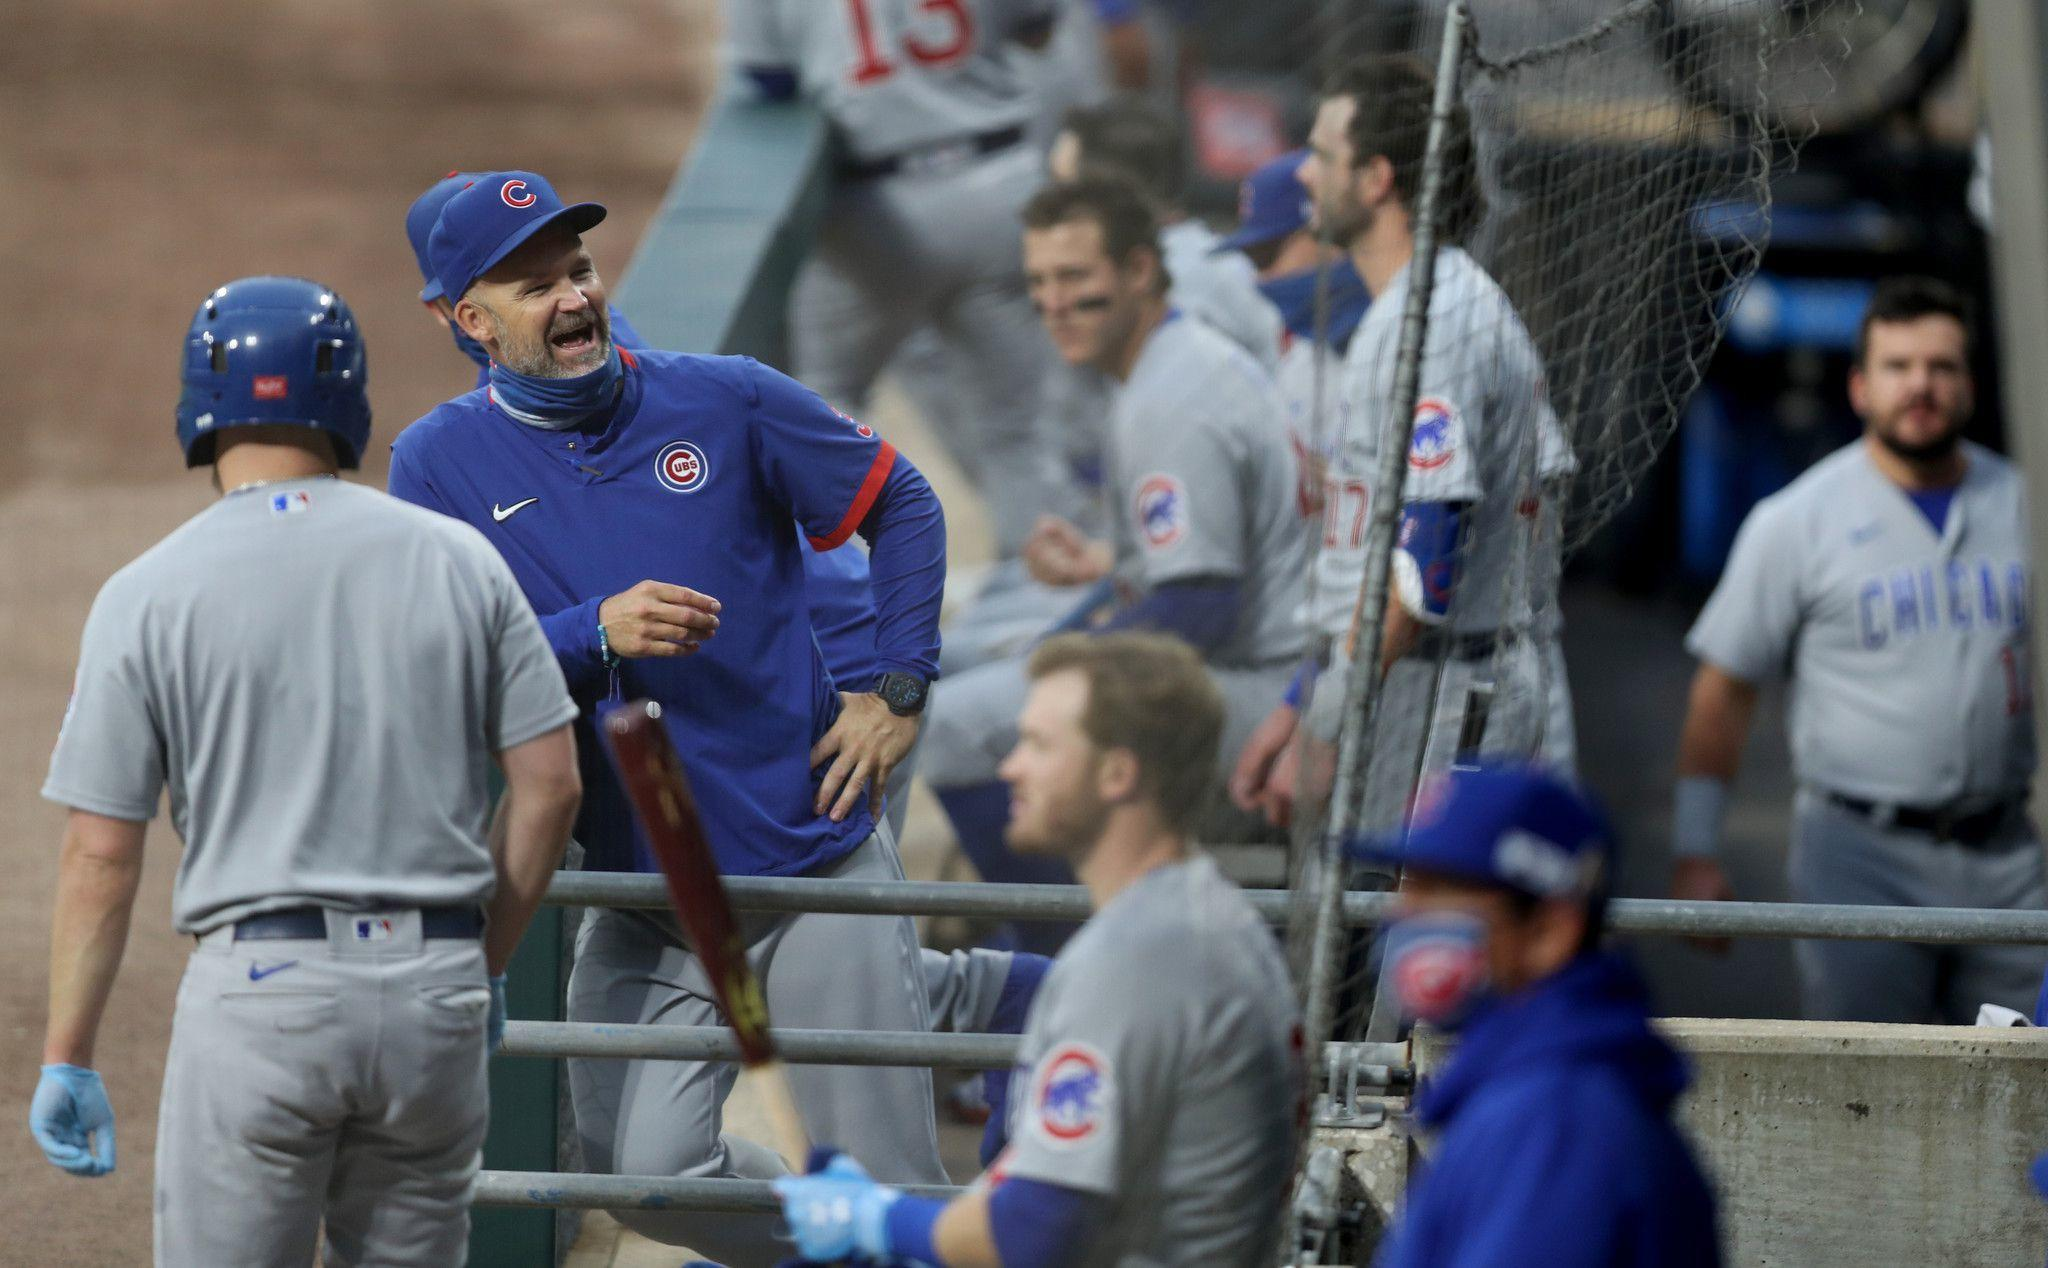 David Ross never lost faith in the Cubs' core players. As they embark on what might be a last hurrah, 'I still have to trust in that group.'